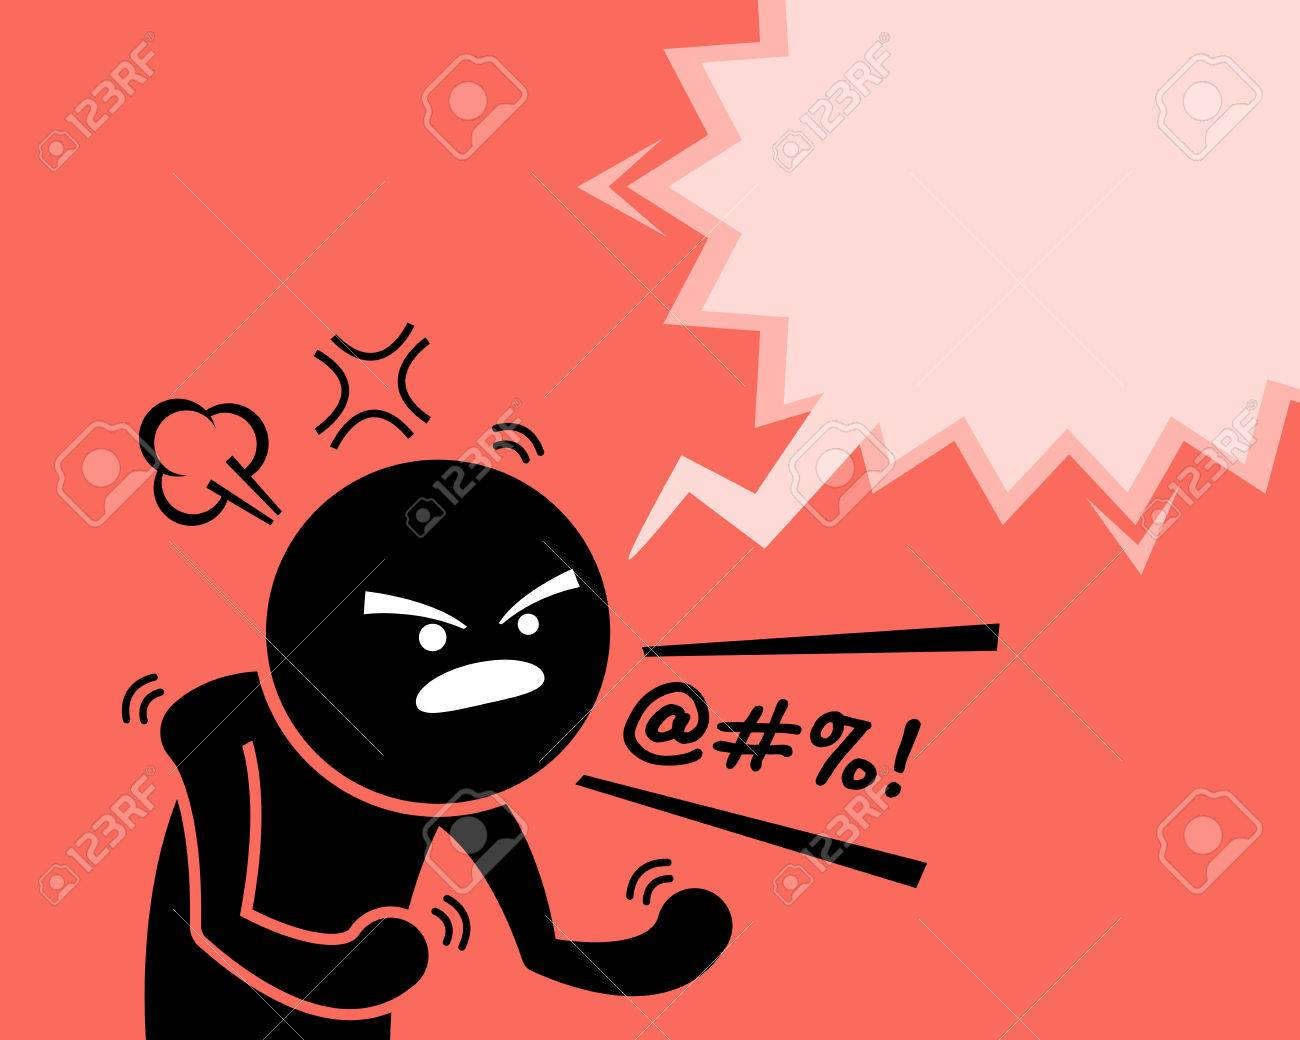 A very angry man expressing his anger, rage, and dissatisfaction by asking why. He is cursing and swearing at something or someone by yelling and screaming out loud. He is very pissed off. - 84729183